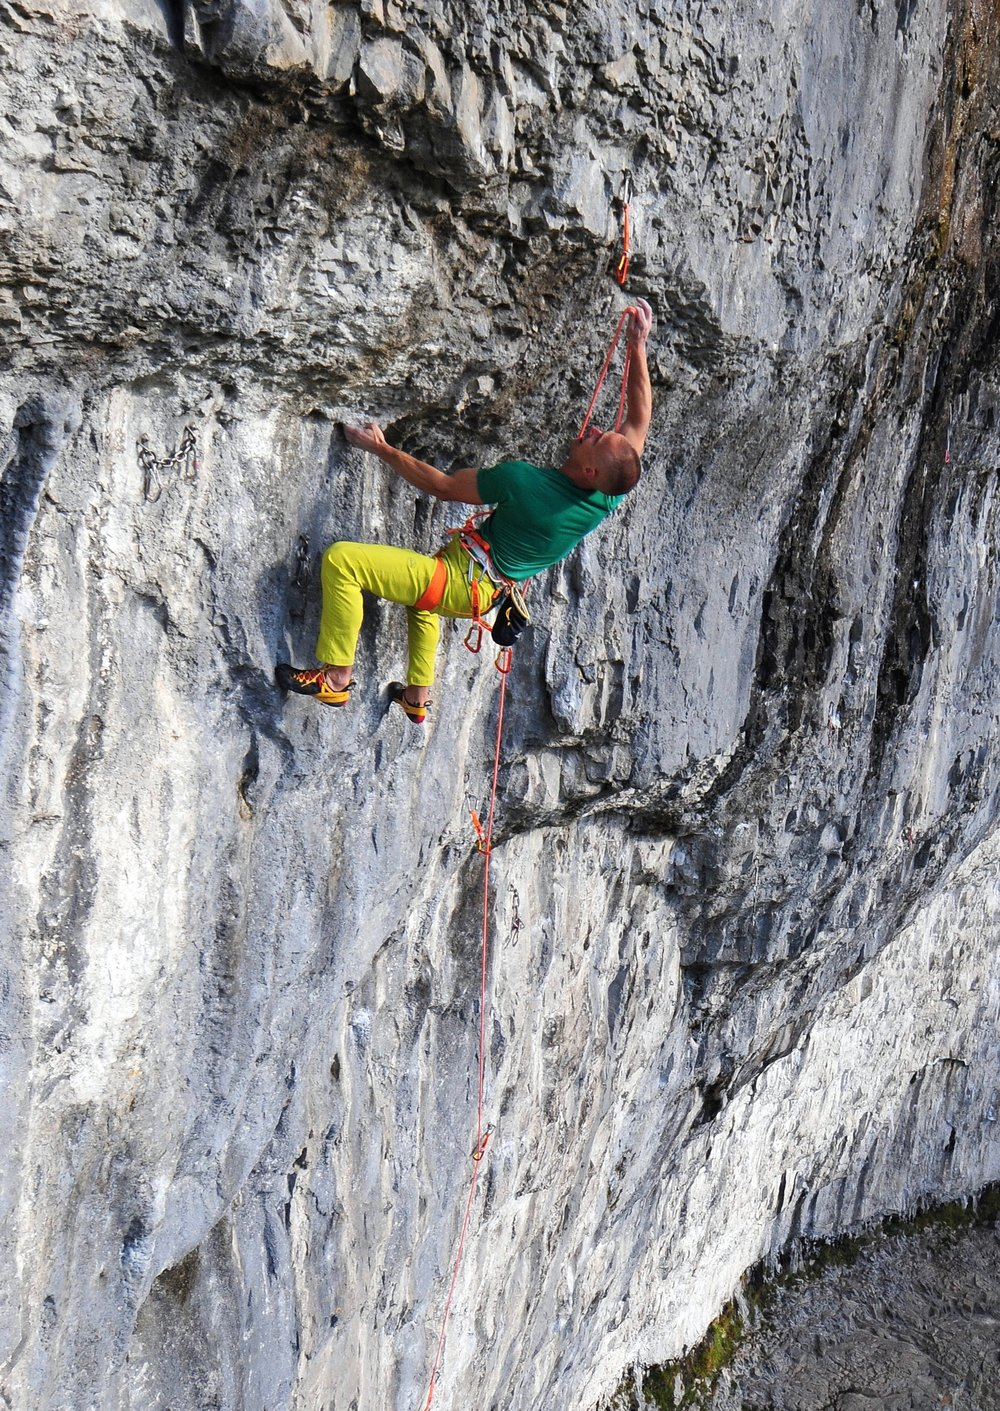 The crux clip on Sabotage 8c+, Malham, UK, using Spirit quickdraws. Photo: Ian Parnell